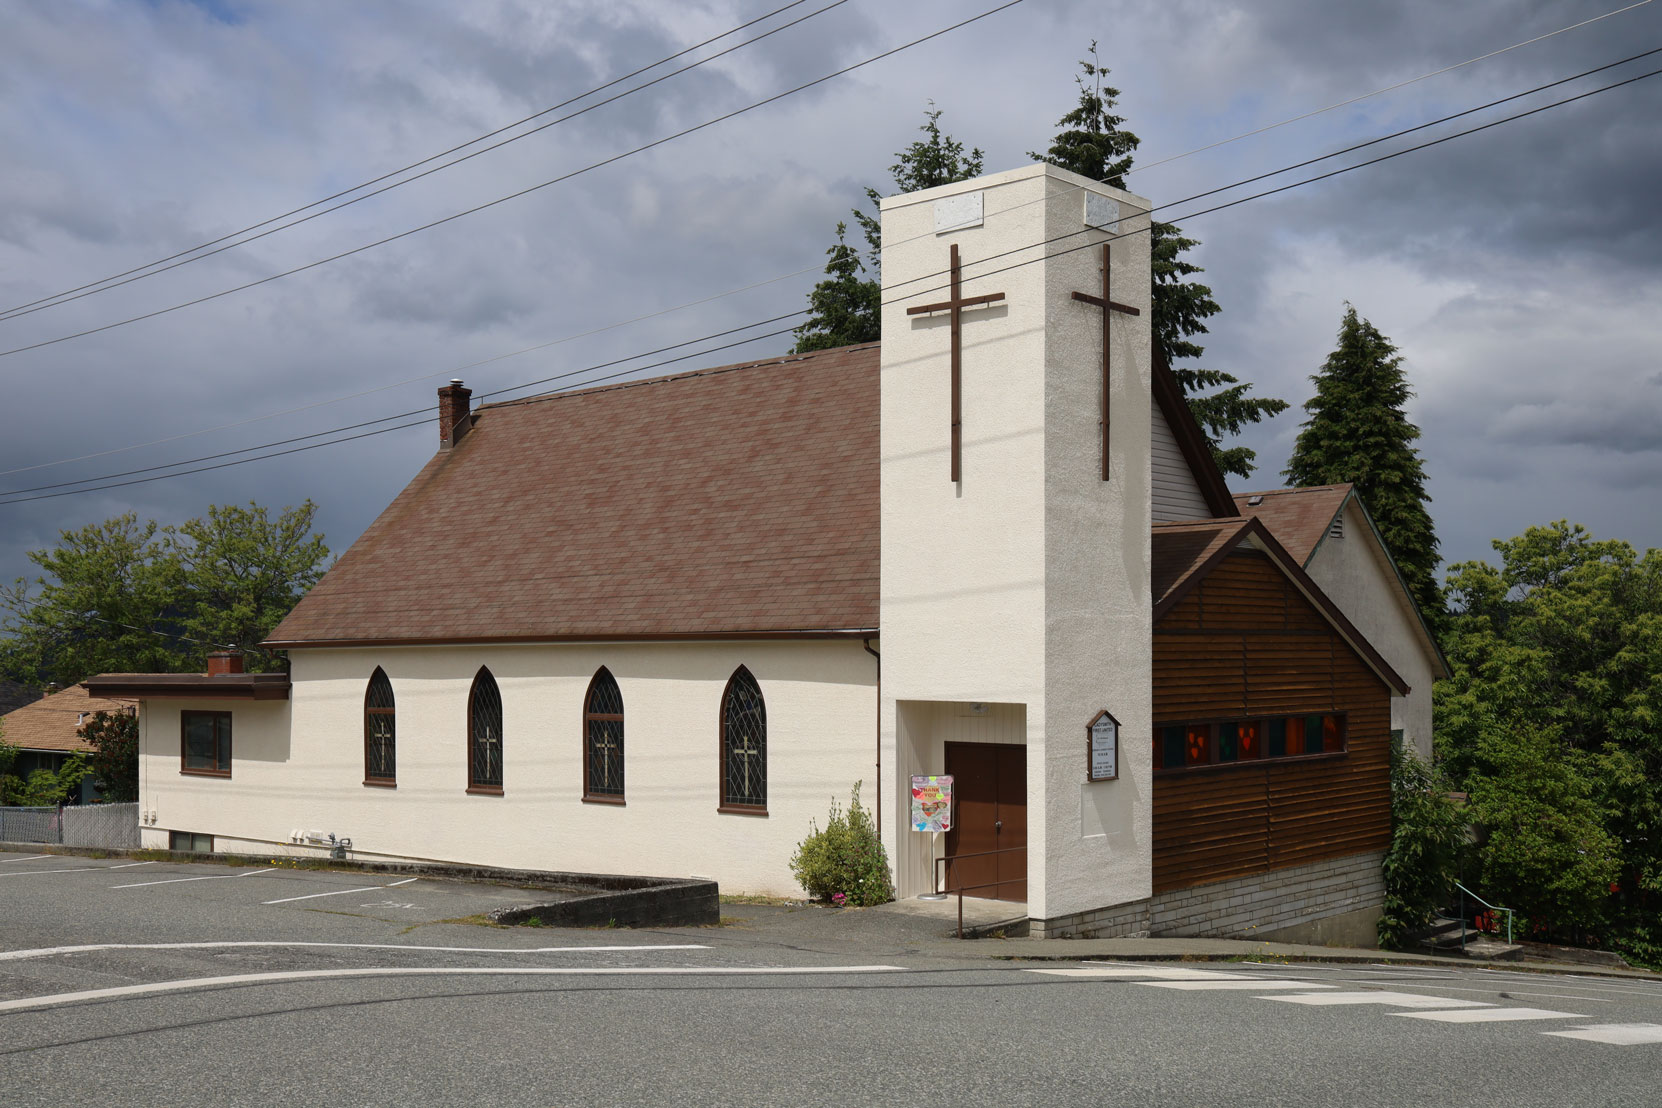 Ladysmith United Church, 232 High Street, built in 1950. (photo: Mark Anderson)